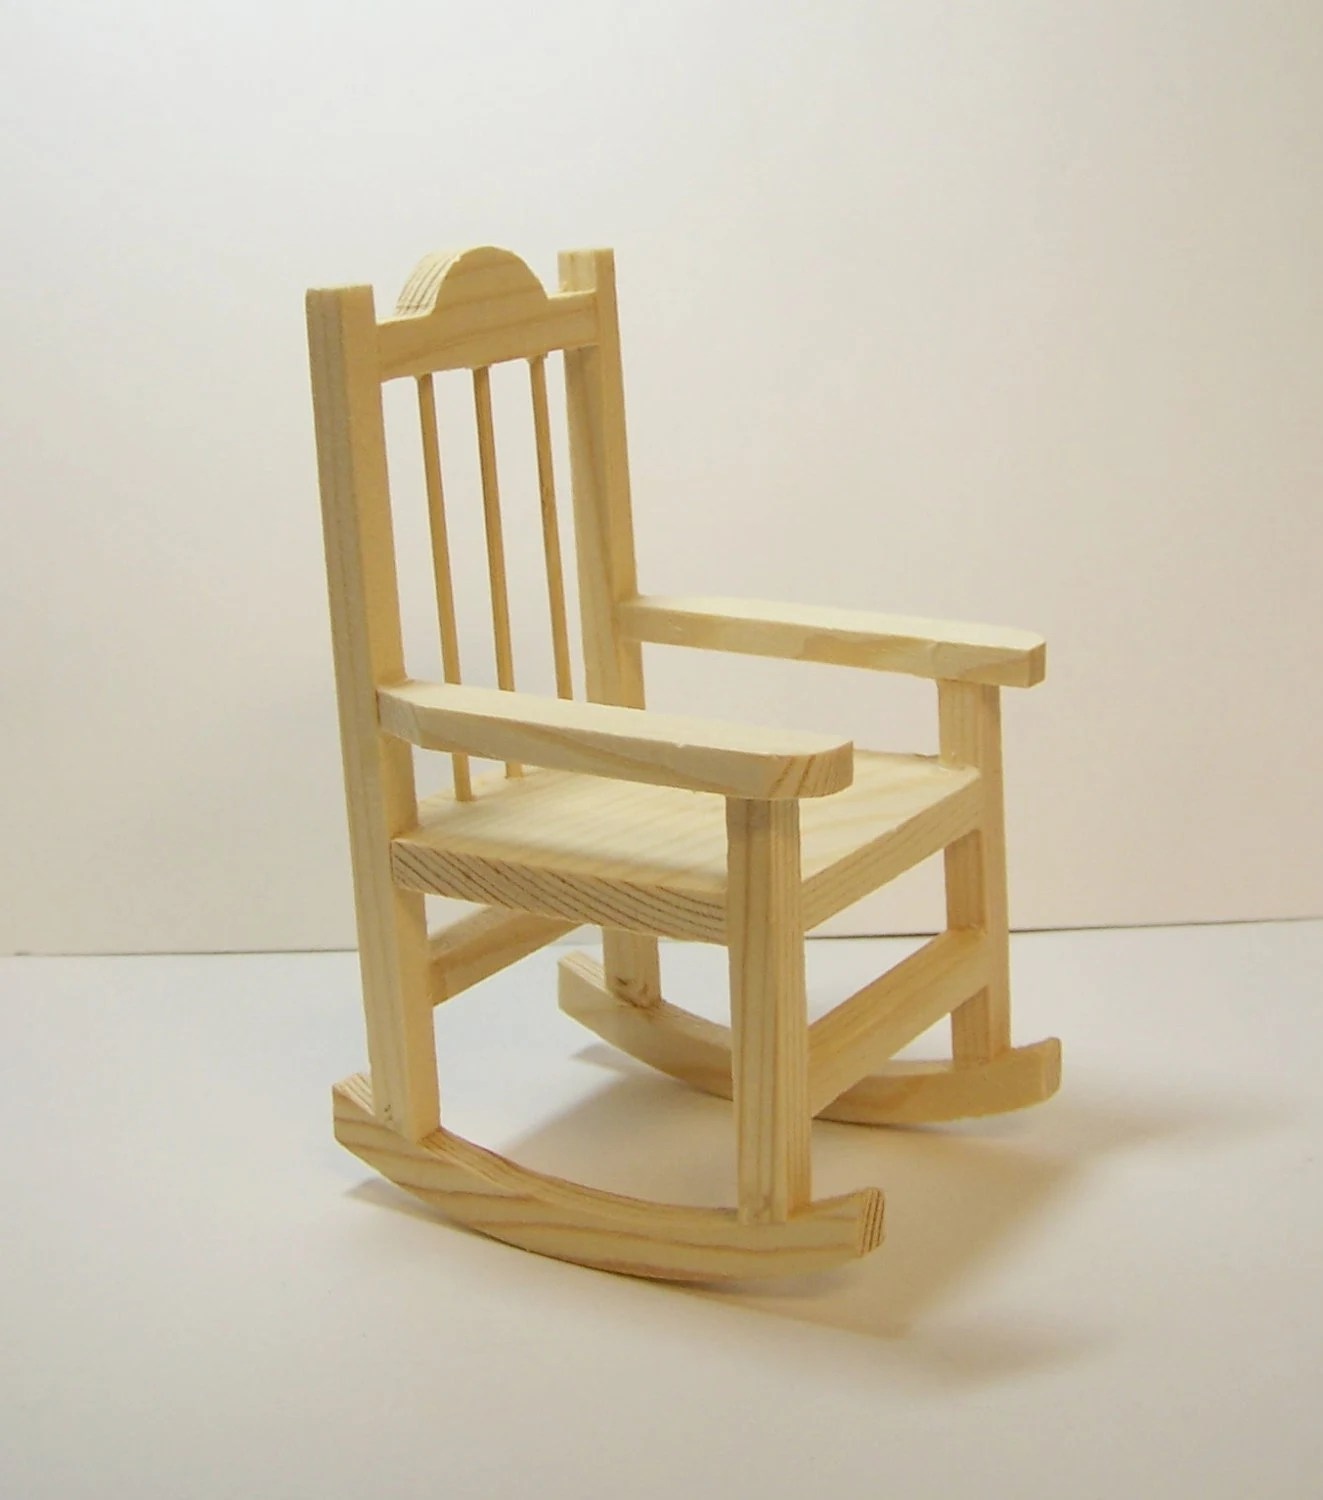 mini rocking chair ergonomic ball office miniature unfinished wood ready to paint or